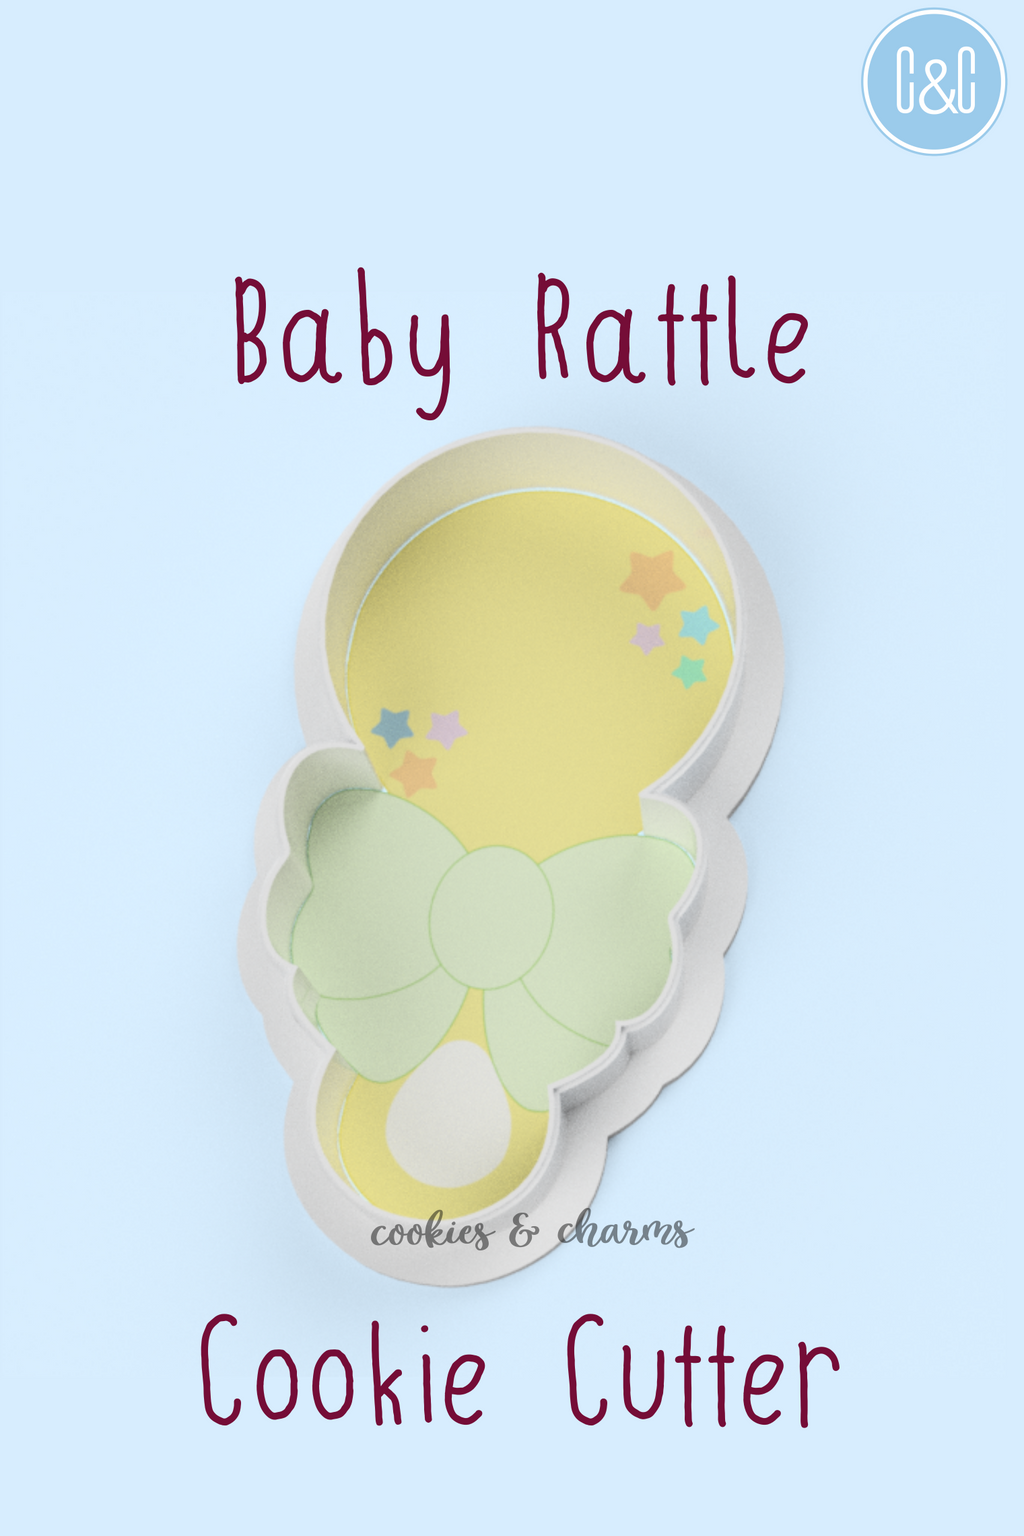 Baby rattle cookie cutter.png